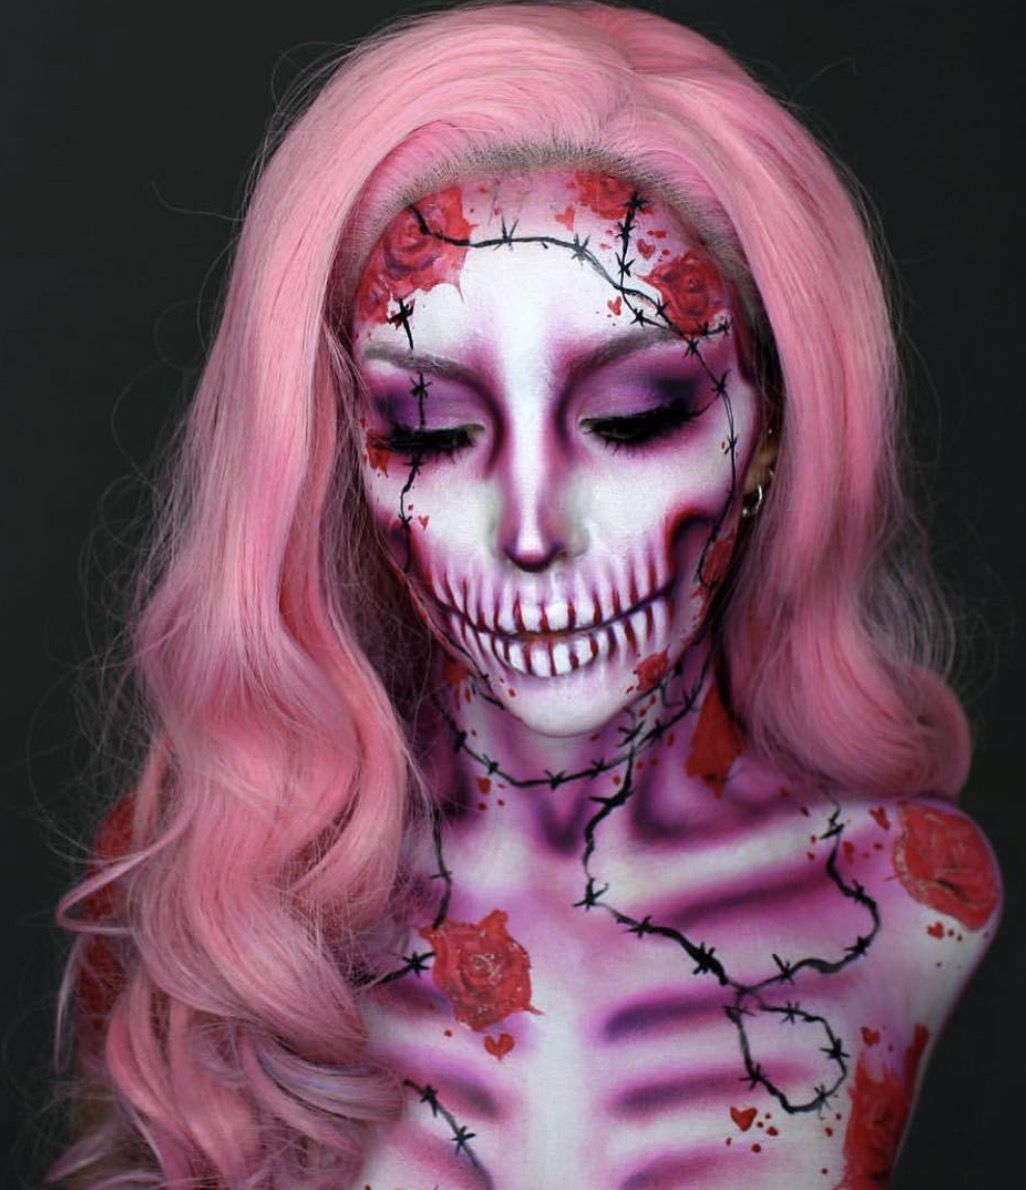 41 Most Jaw-Dropping Halloween Makeup Ideas That Are Still Pretty: Pink Skull Makeup / Click though to see more awe inspiring pretty Halloween makeup looks, gorgeous Halloween makeup and Halloween costumes. #halloweenmakeup #halloweenmakeuppretty #halloweencostumes #halloweenmakeupinspo #pinkskullmakeup #skullmakeup